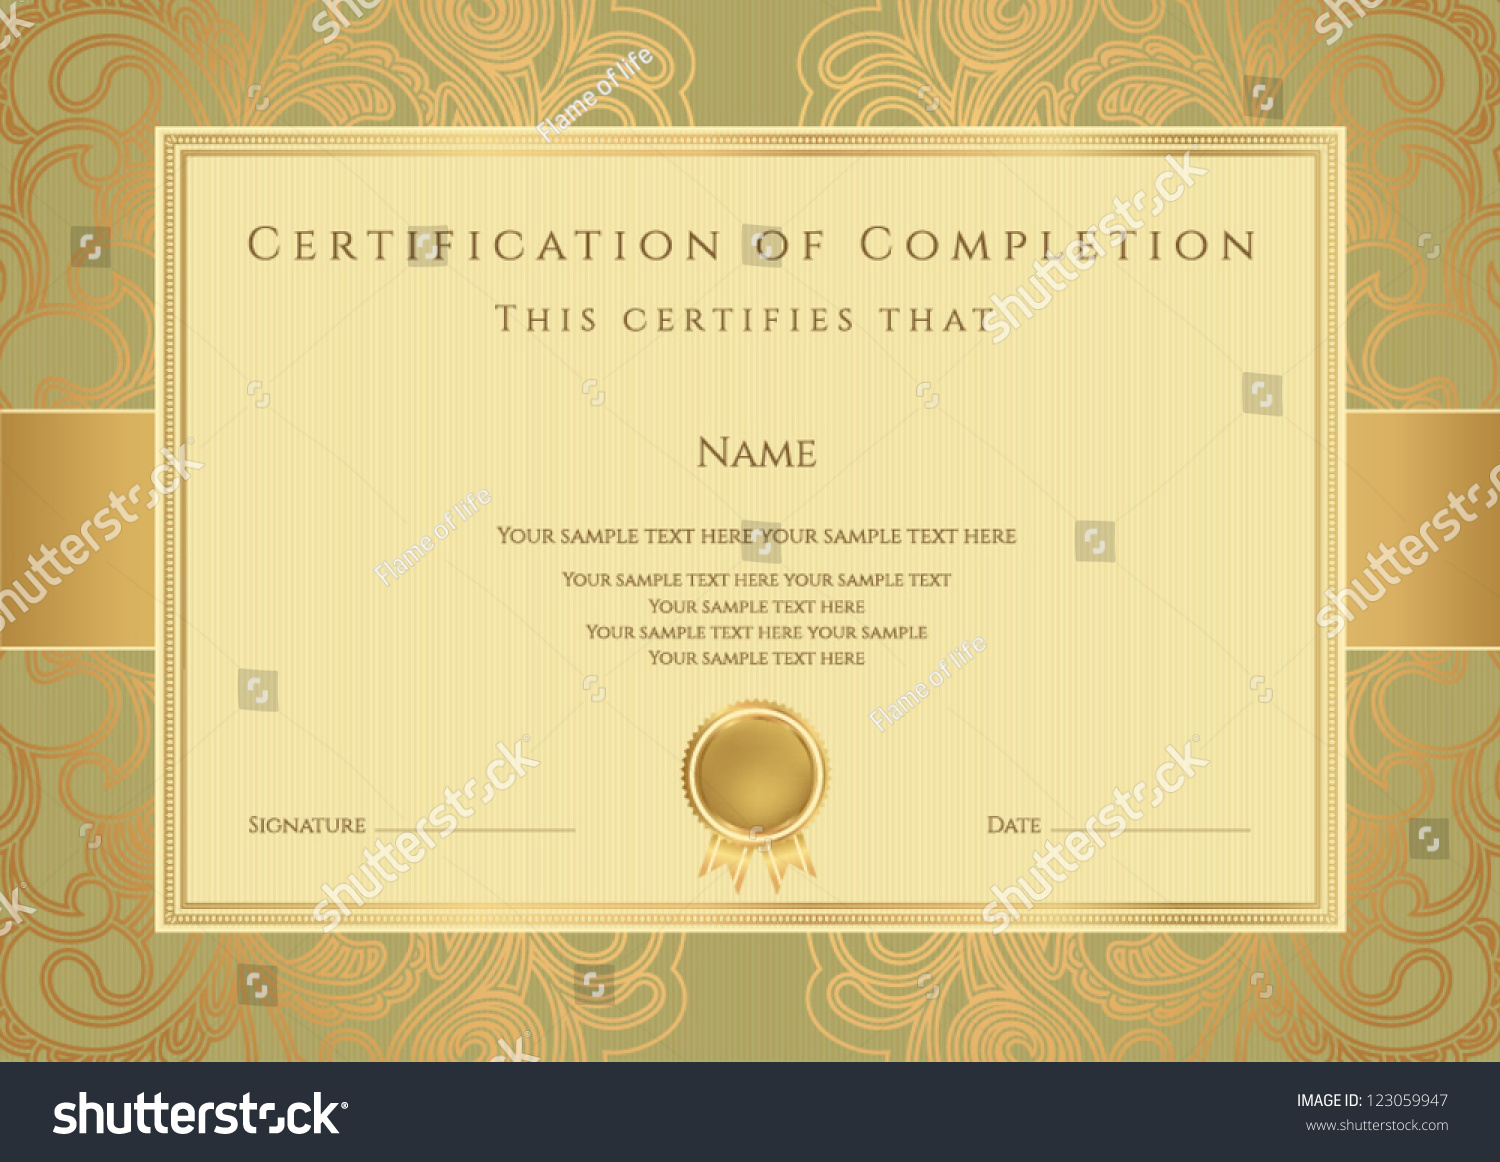 Horizontal Green Certificate Of Completion Template With ...